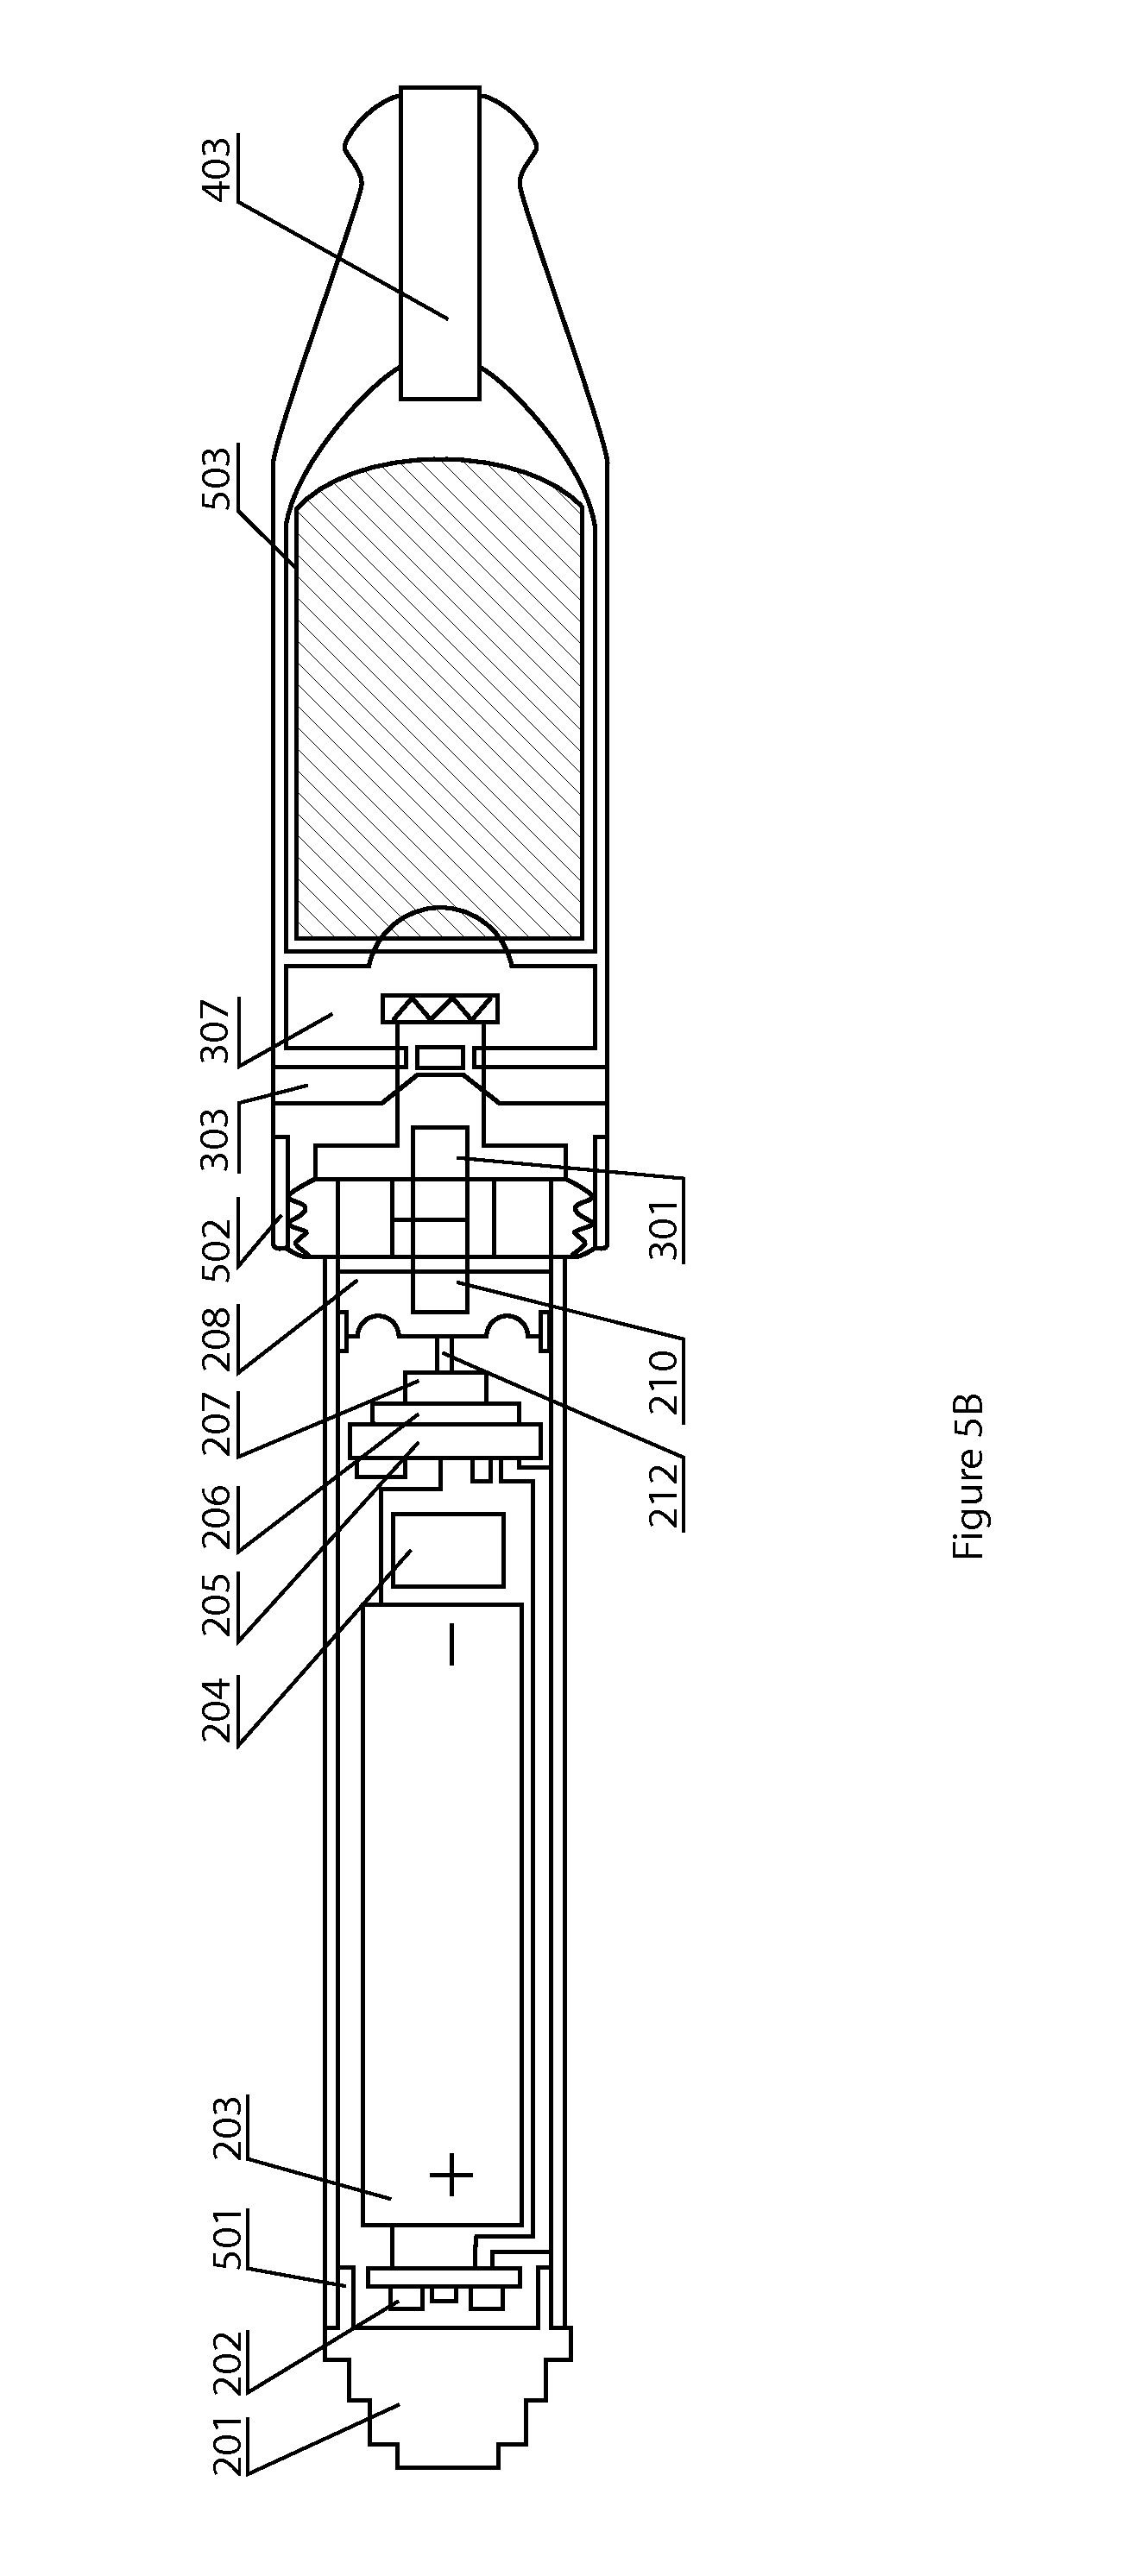 patent us8375957 - electronic cigarette